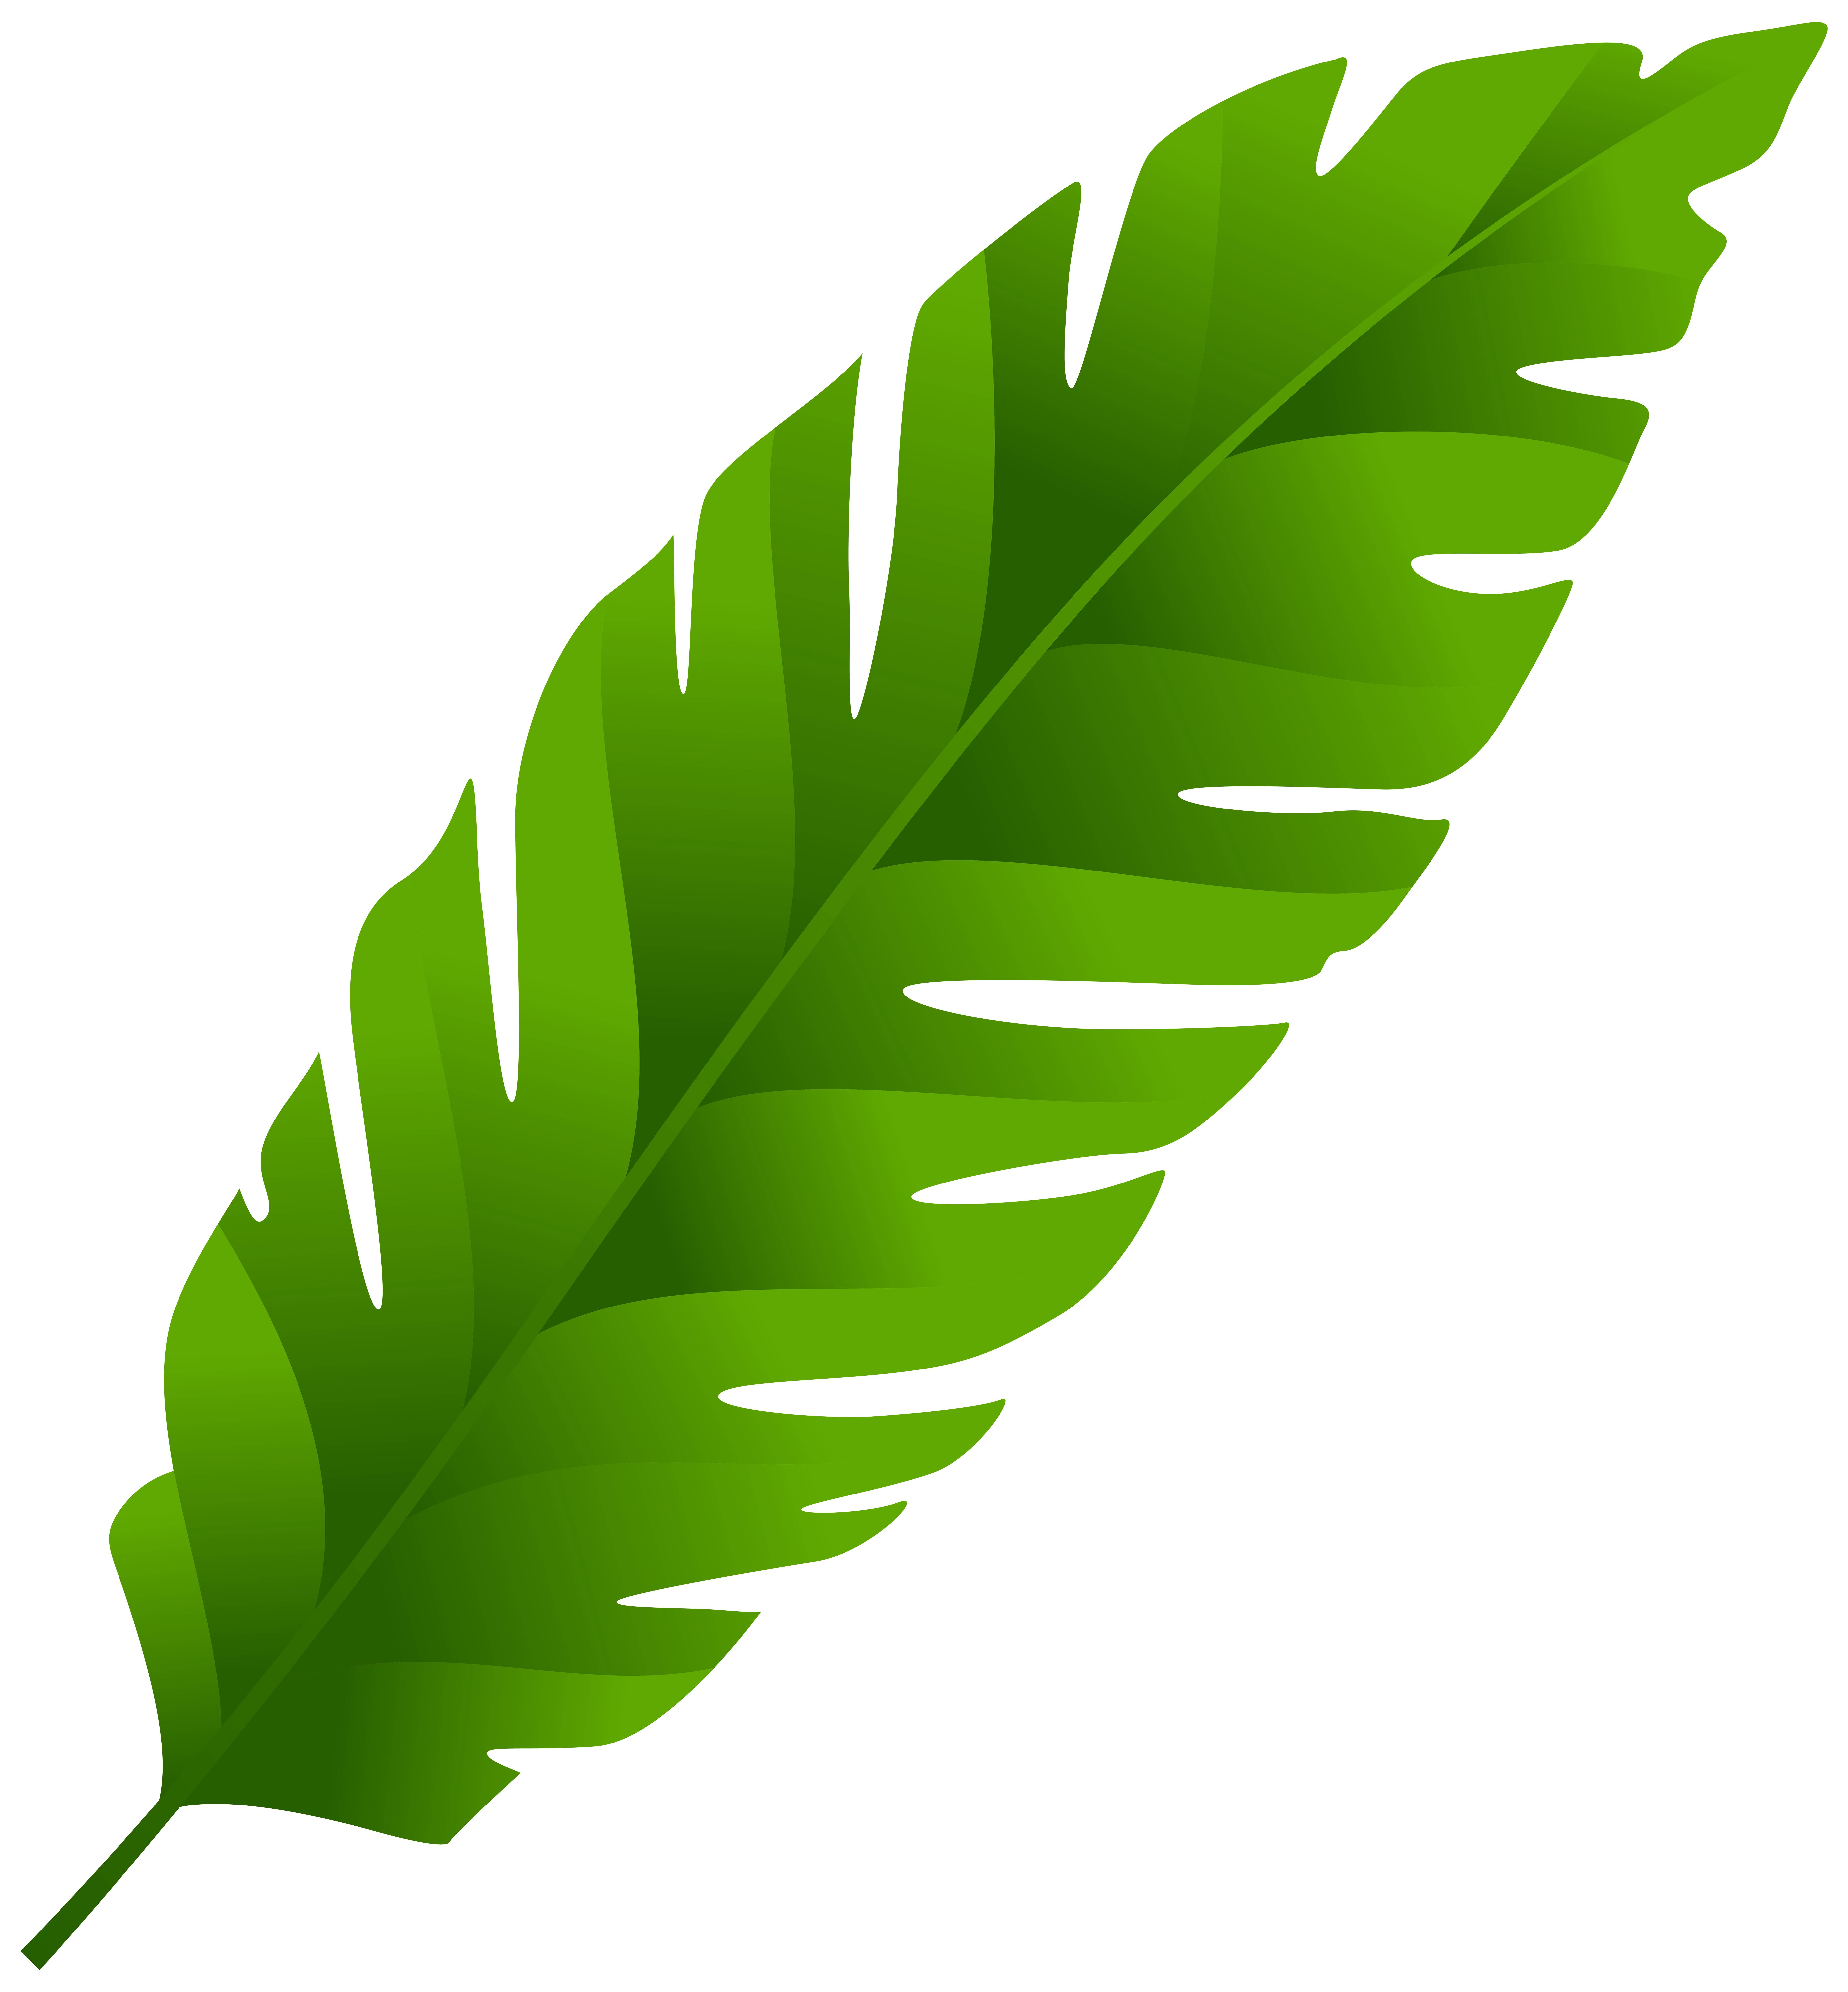 tree leaves clipart at getdrawings com free for personal use tree rh getdrawings com clip art of leaves black and white clipart of fall leaves